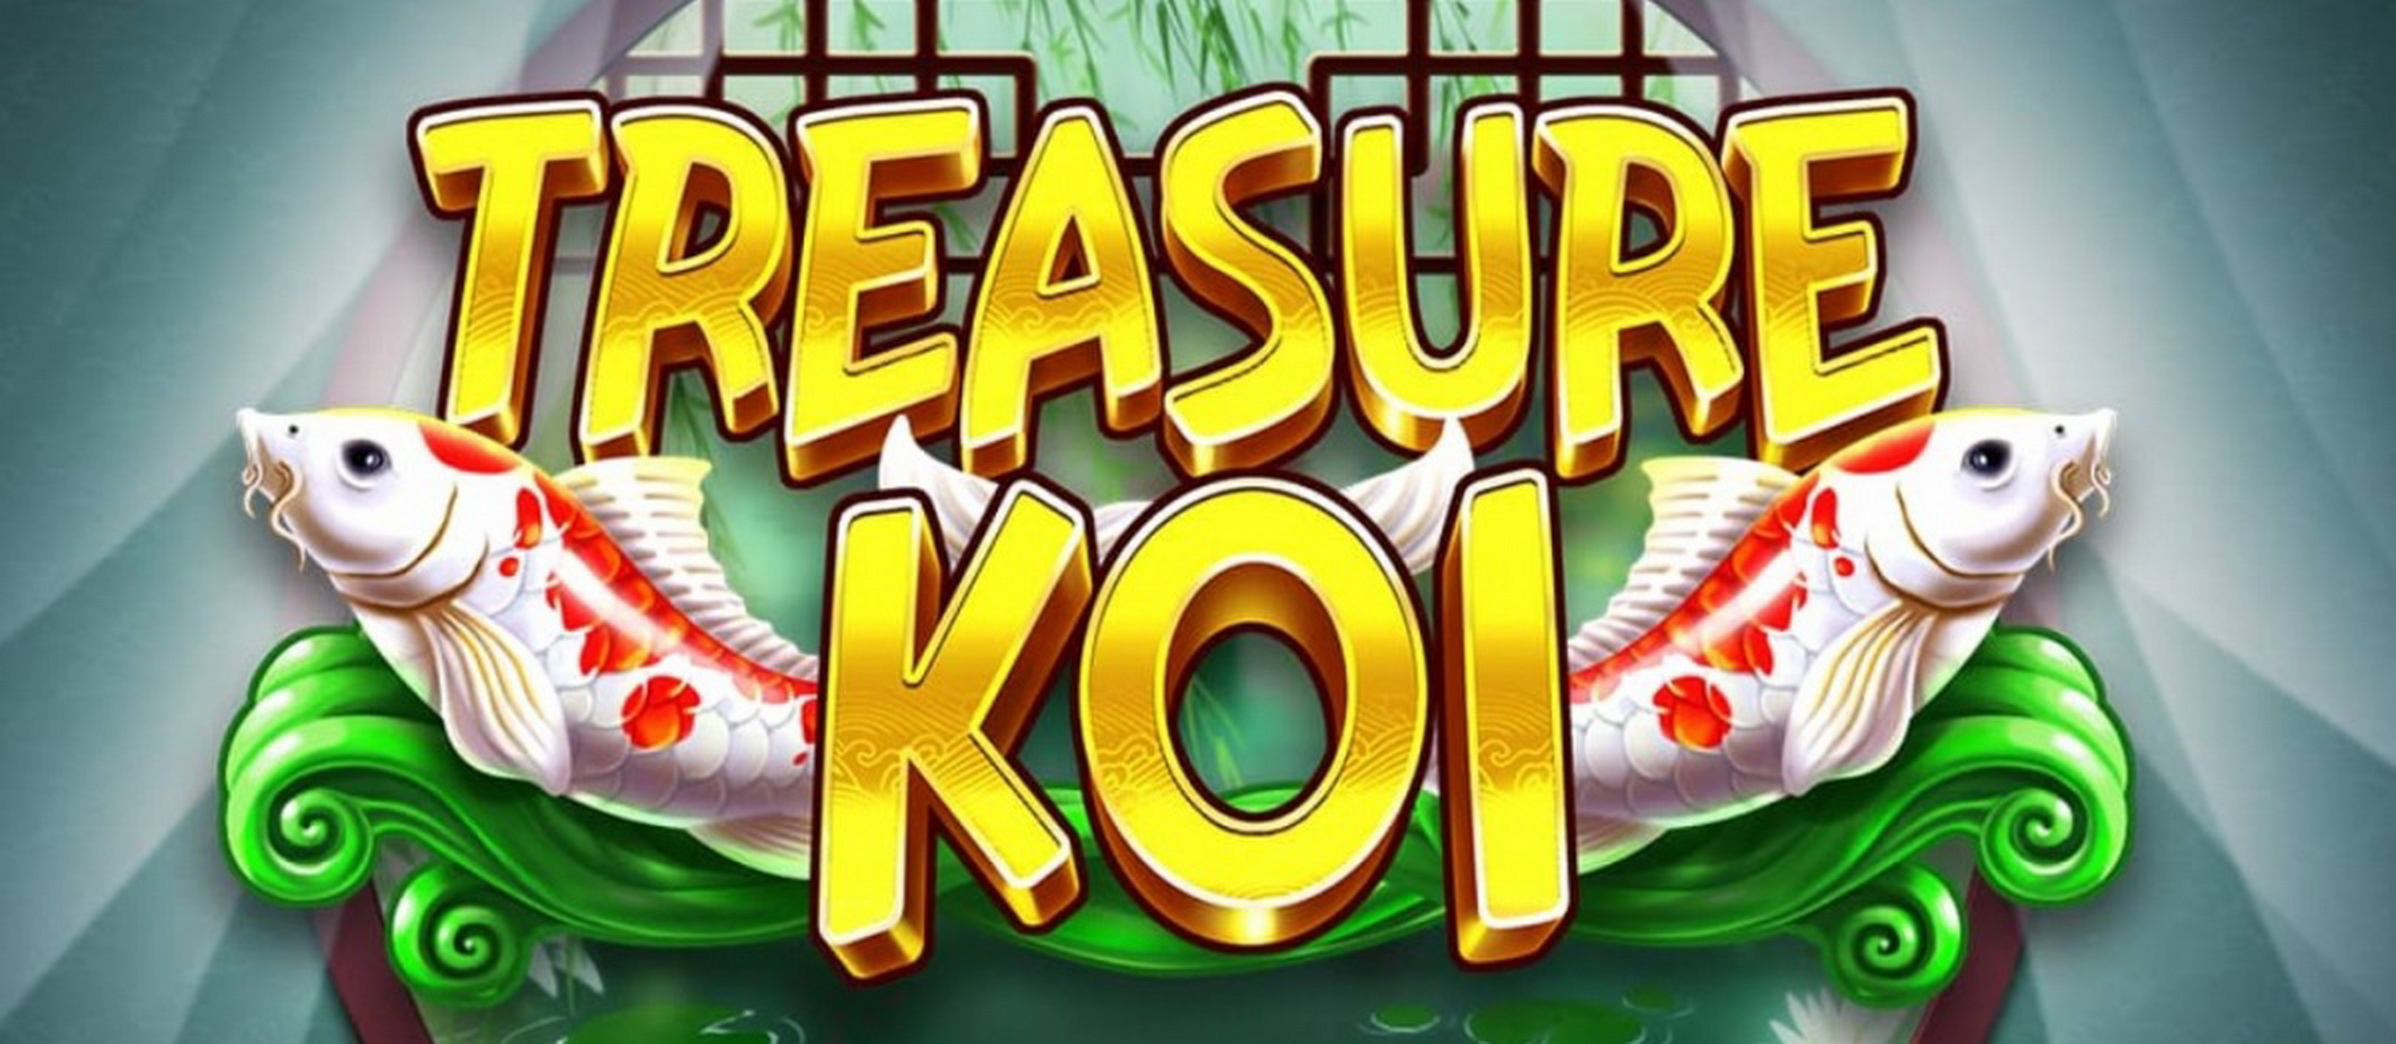 The Treasure Koi Online Slot Demo Game by Aspect Gaming